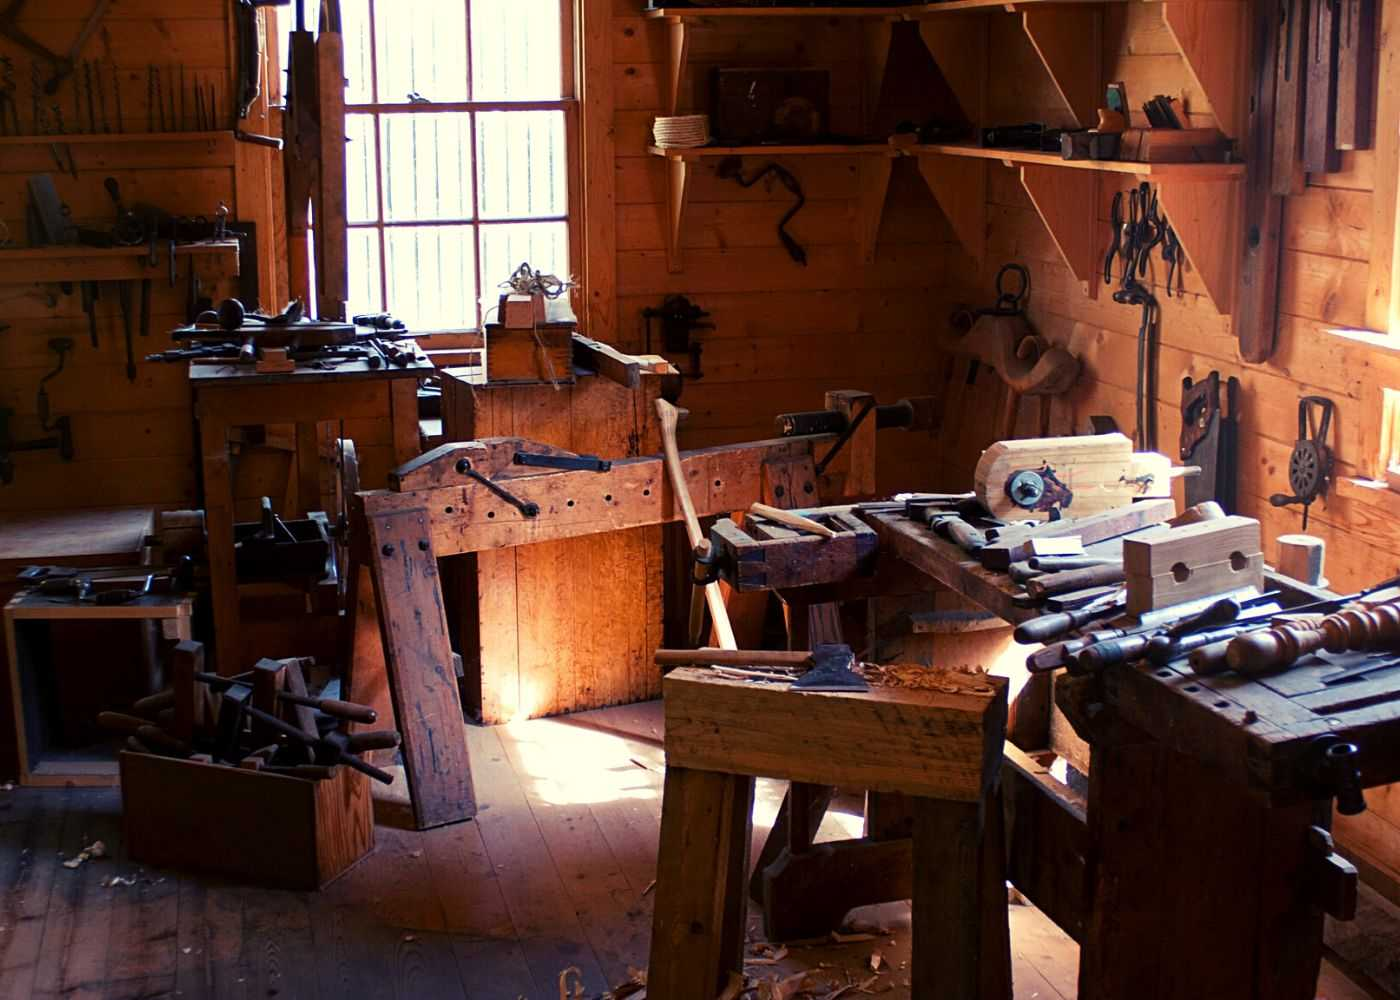 A woodworking space to craft wood lathe ideas